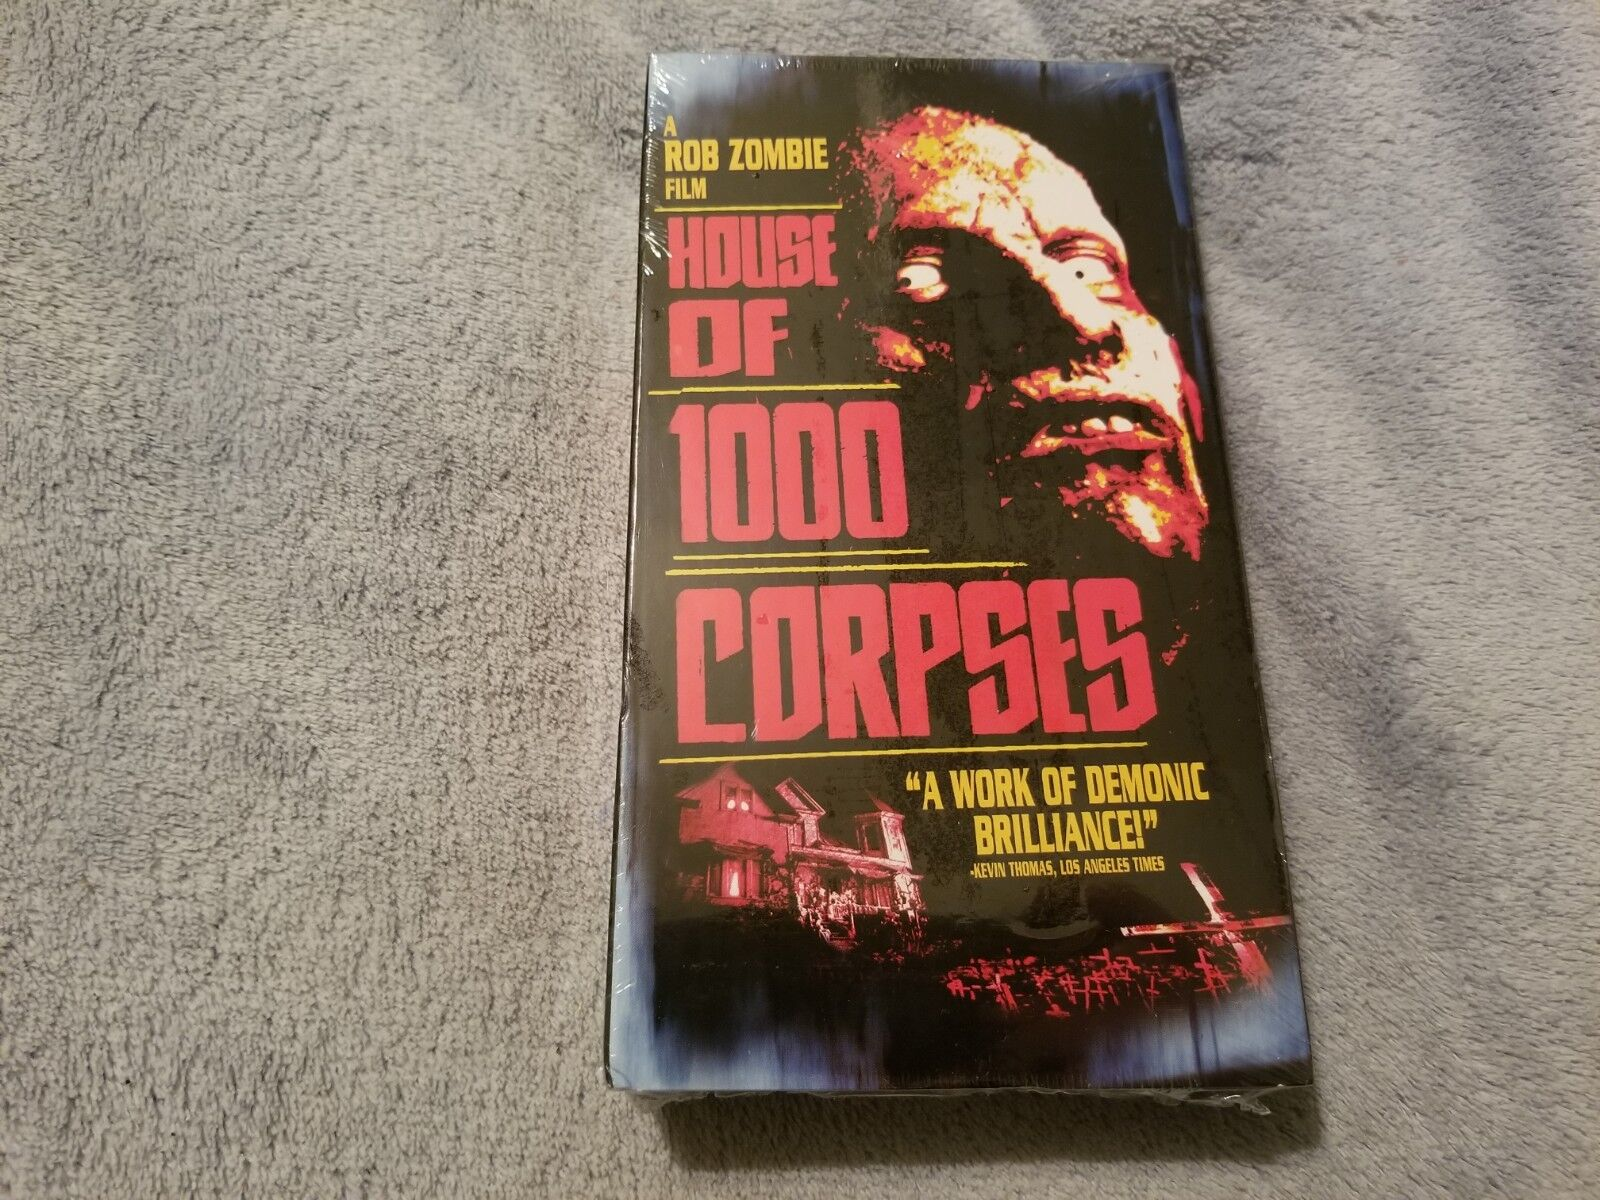 House of 1000 Corpses (2003) - VHS Tape - Horror - Rob Zombie - Sid Haig - NEW